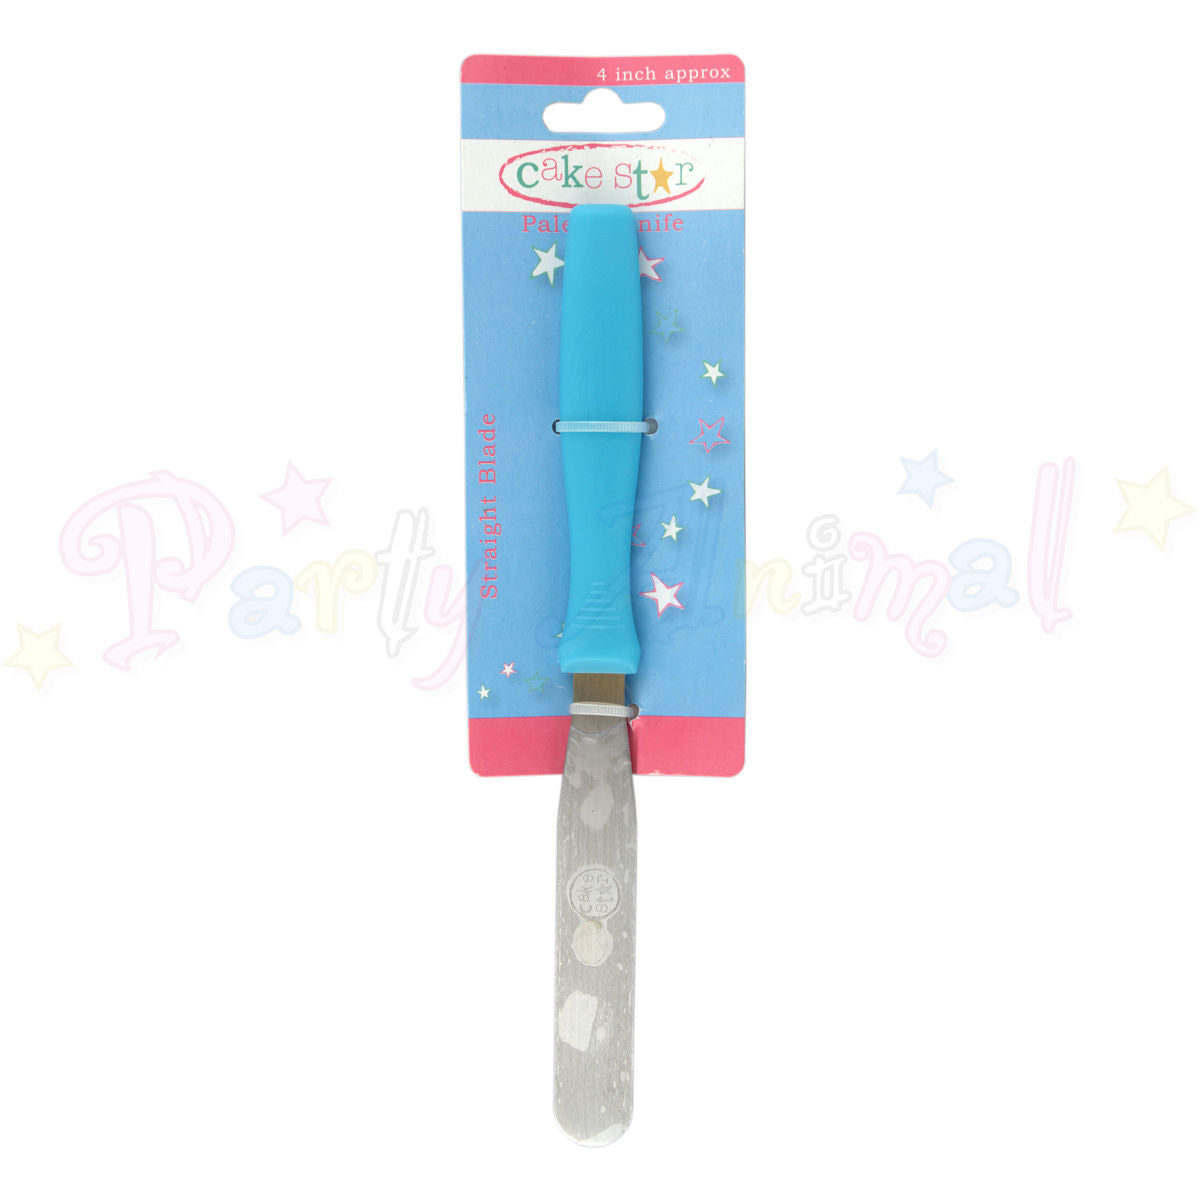 Cake Star - Palette Knife - Straight Blade 4 Inch (100mm)